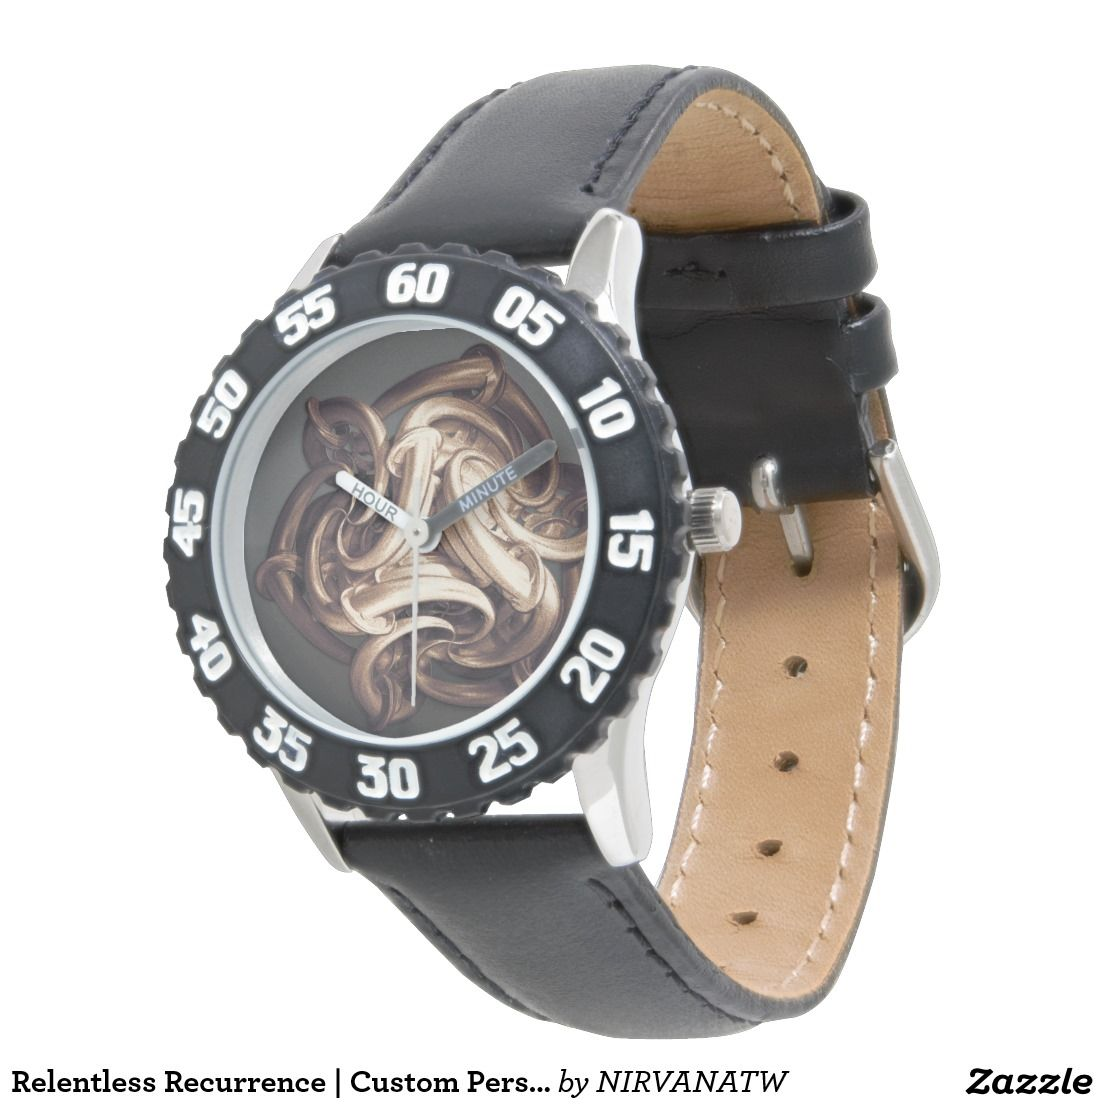 Relentless Recurrence | Custom Personalized Watch